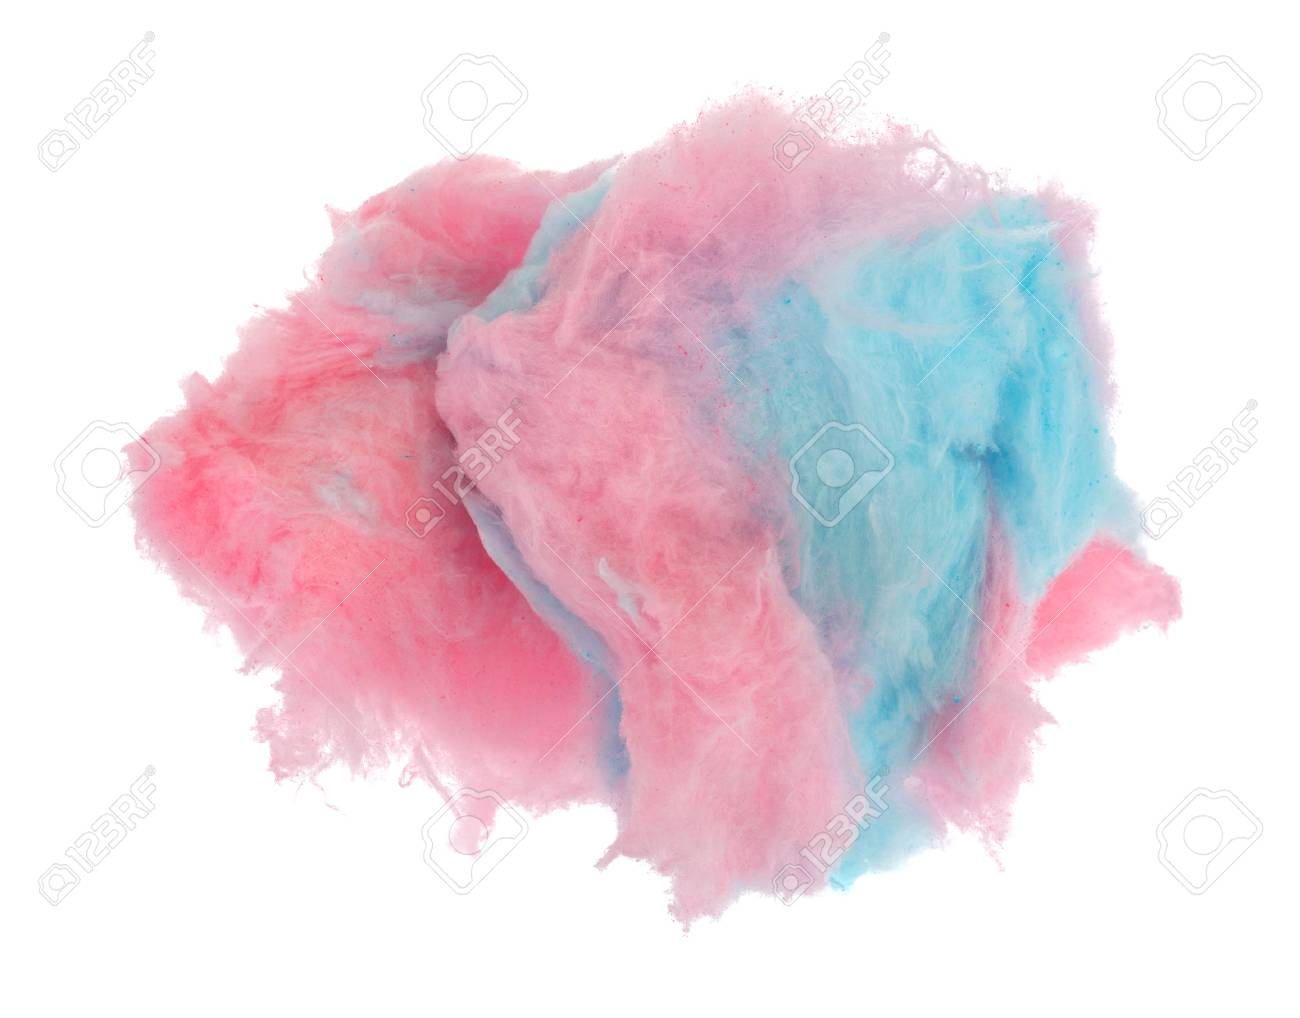 pink and blue cotton